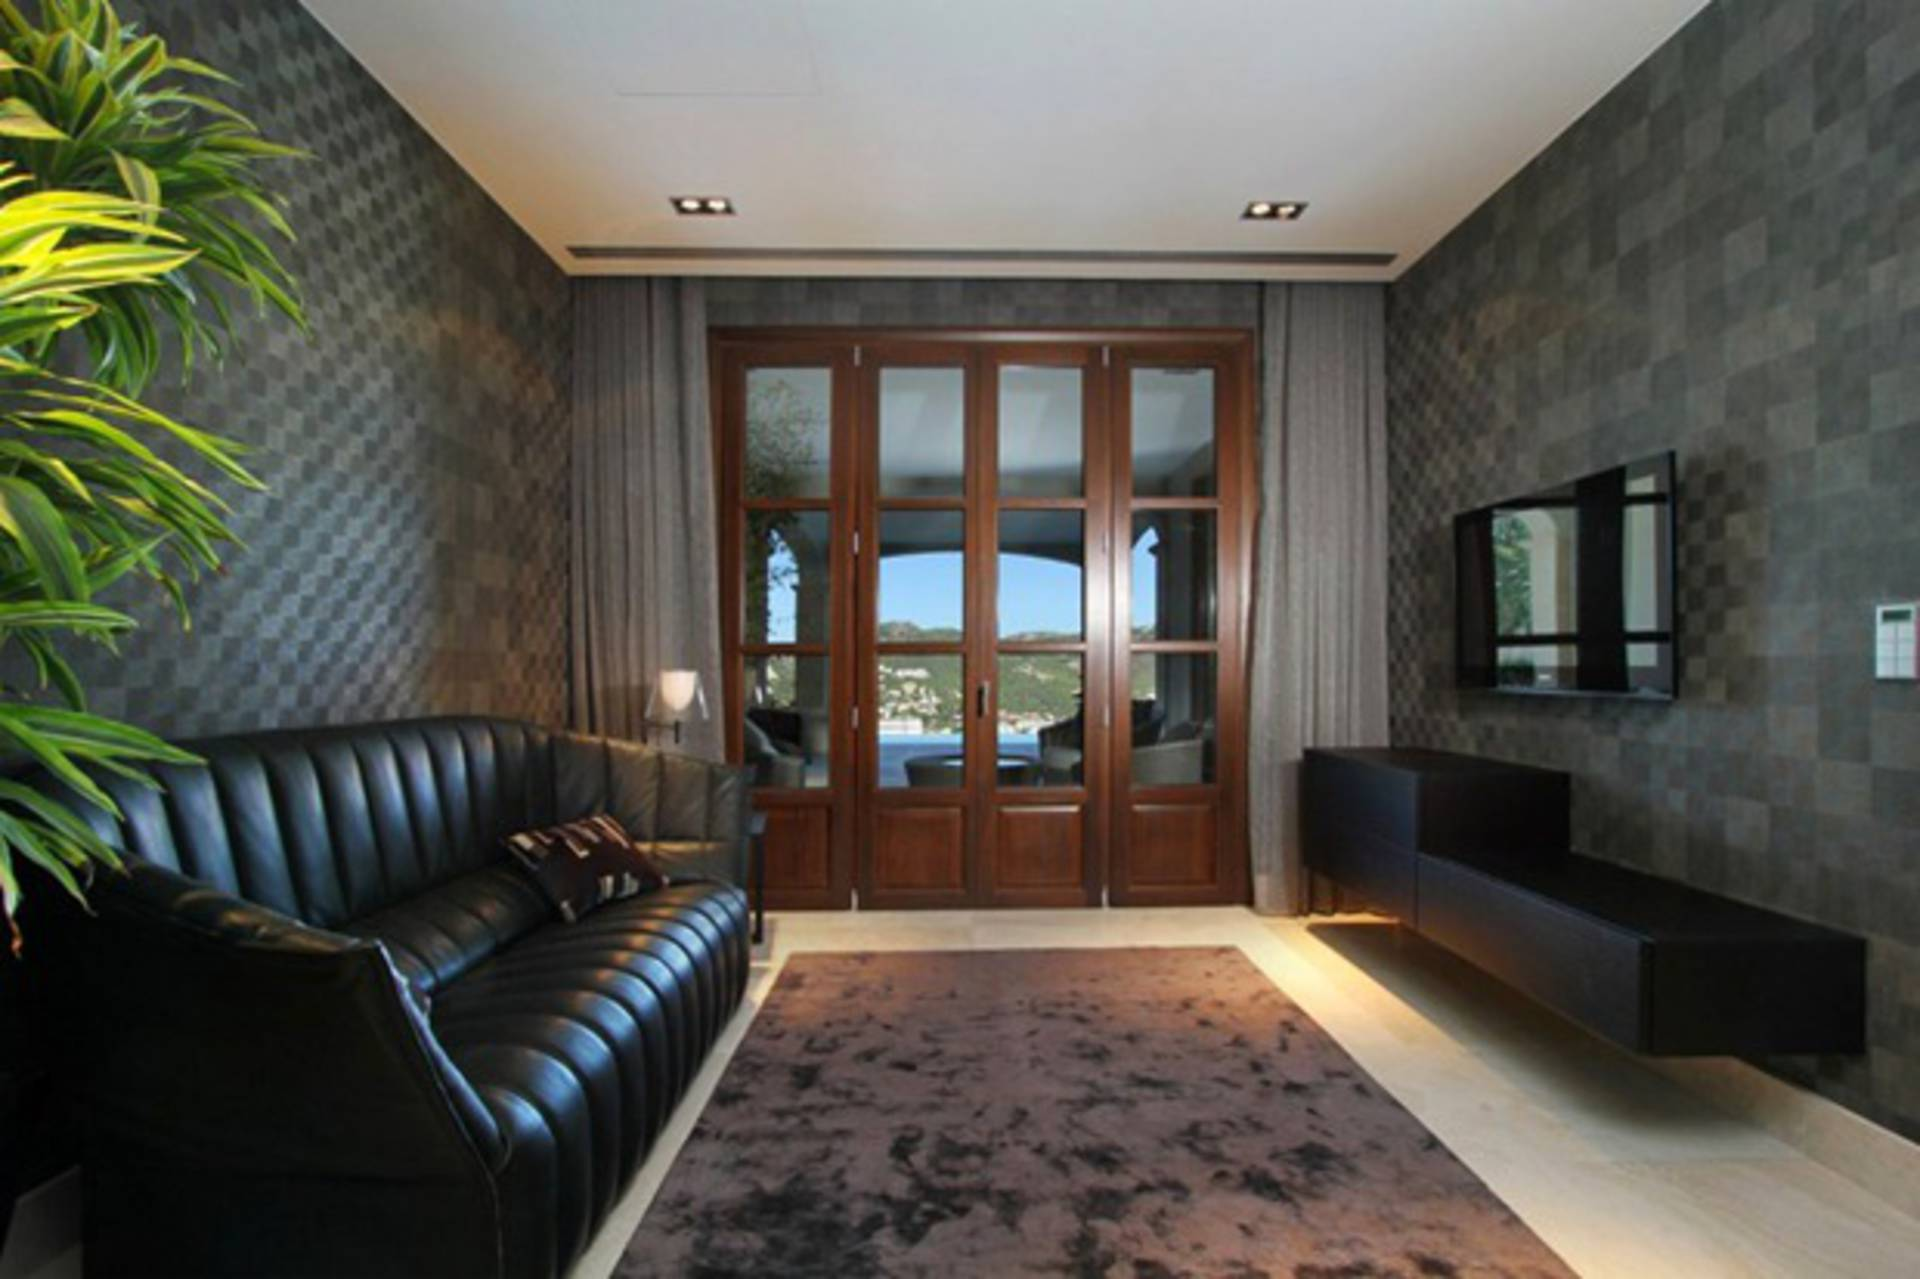 ... Luxury Can Siurell Villa Interiors by Curve Interior Design ... & Luxury Can Siurell Villa Interiors by Curve Interior Design - Home ...